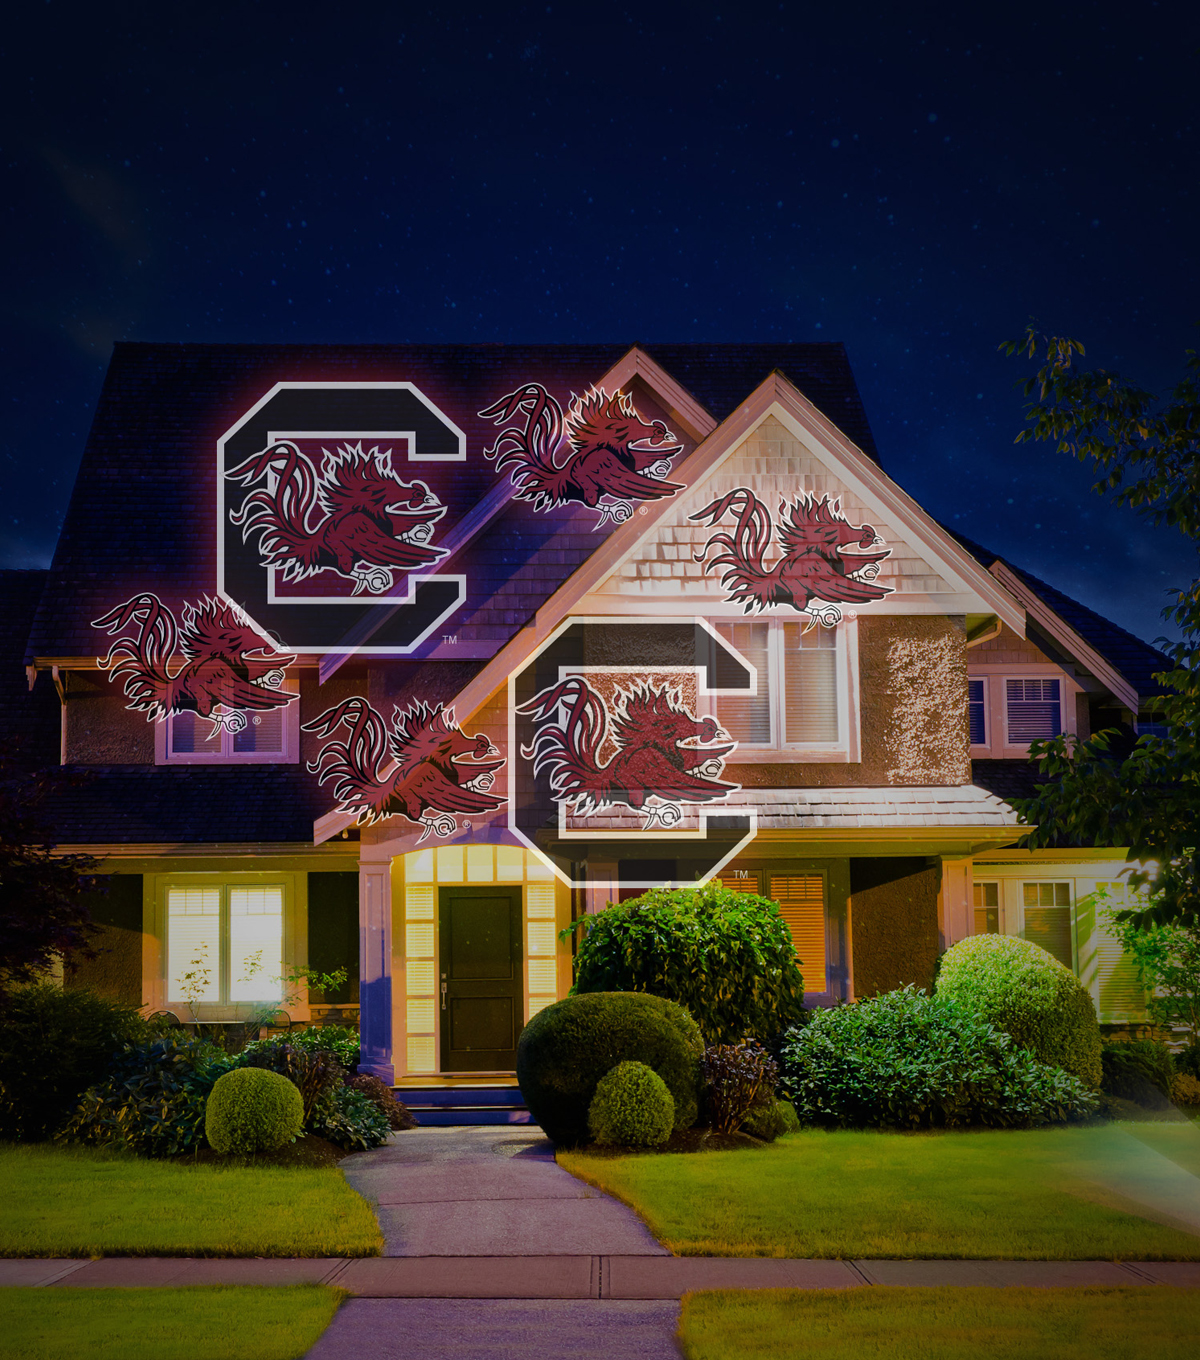 South Carolina Team Pride Light Projector